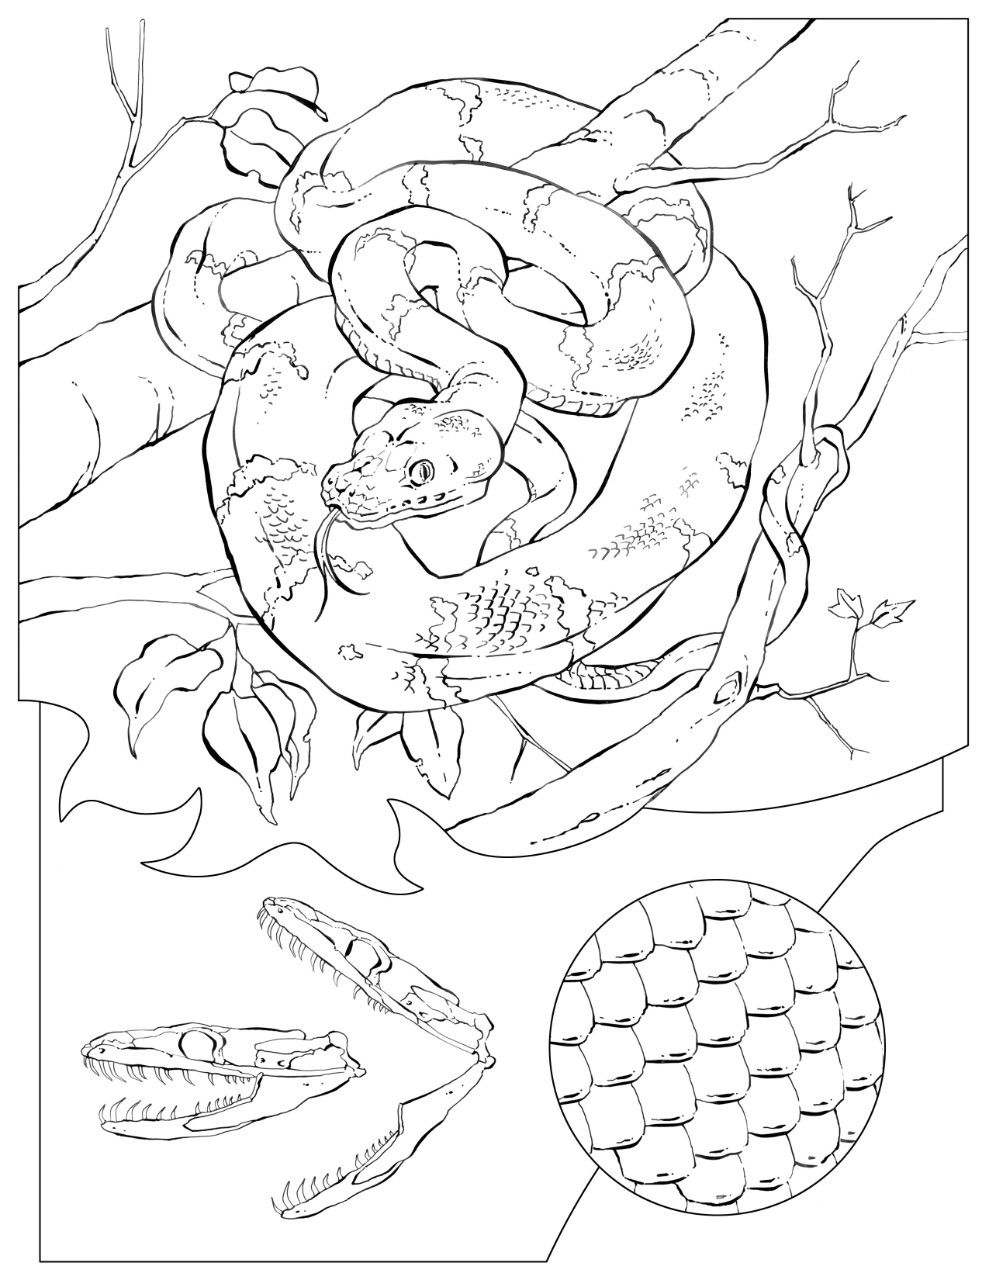 Coloring Book Animals A To I Shark Coloring Pages Coloring Books Dinosaur Coloring Pages